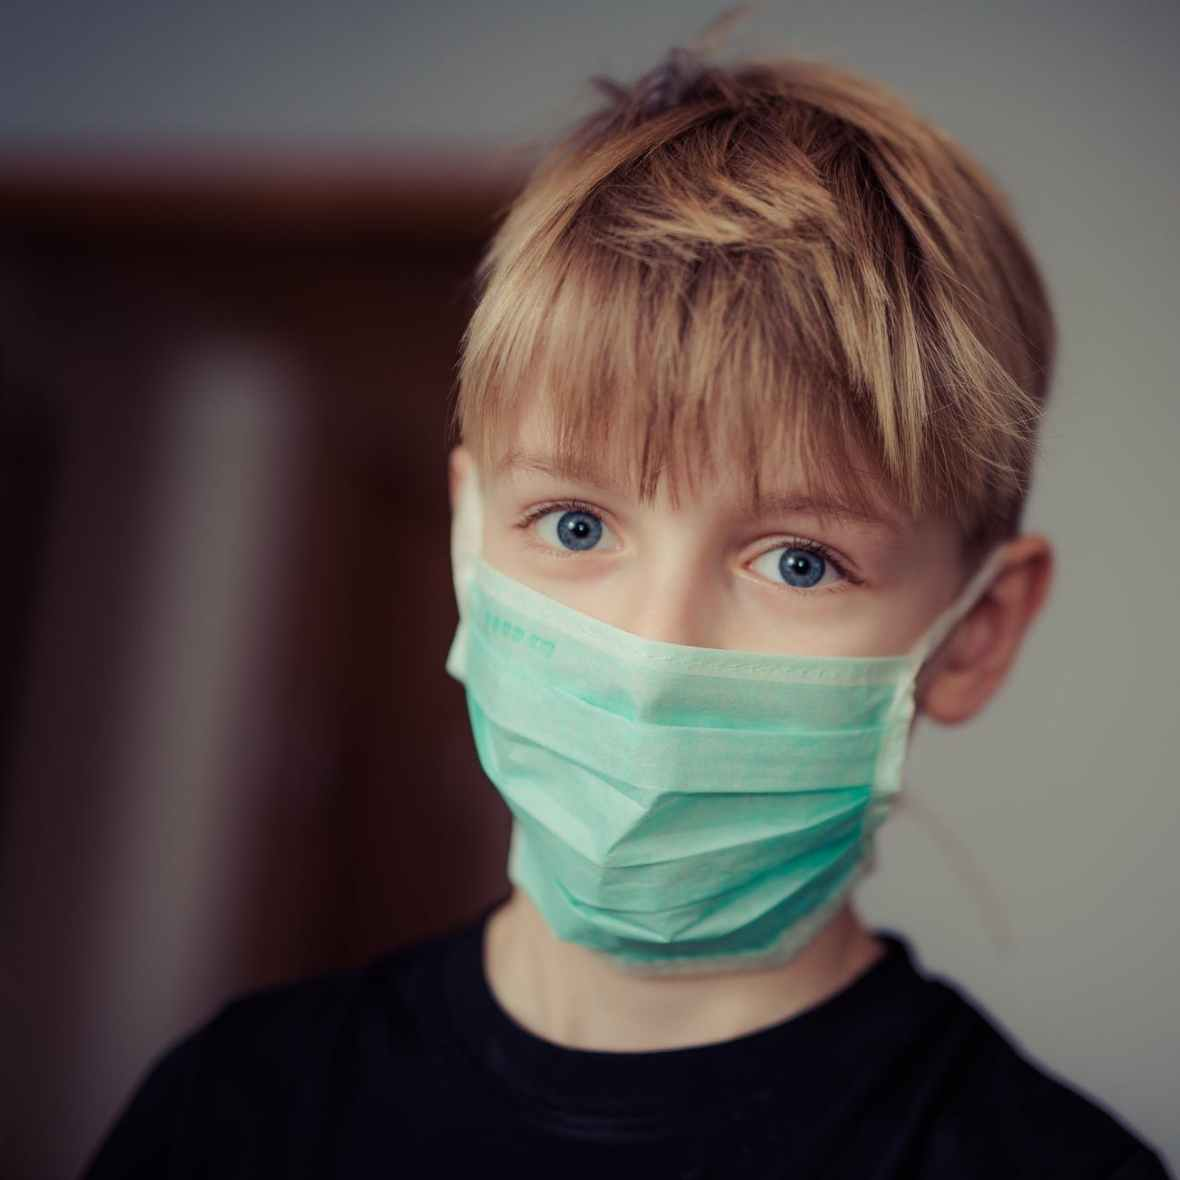 Kid with a medical mask on looking into the camera. Photo by Janko Ferlic on Pexels.com